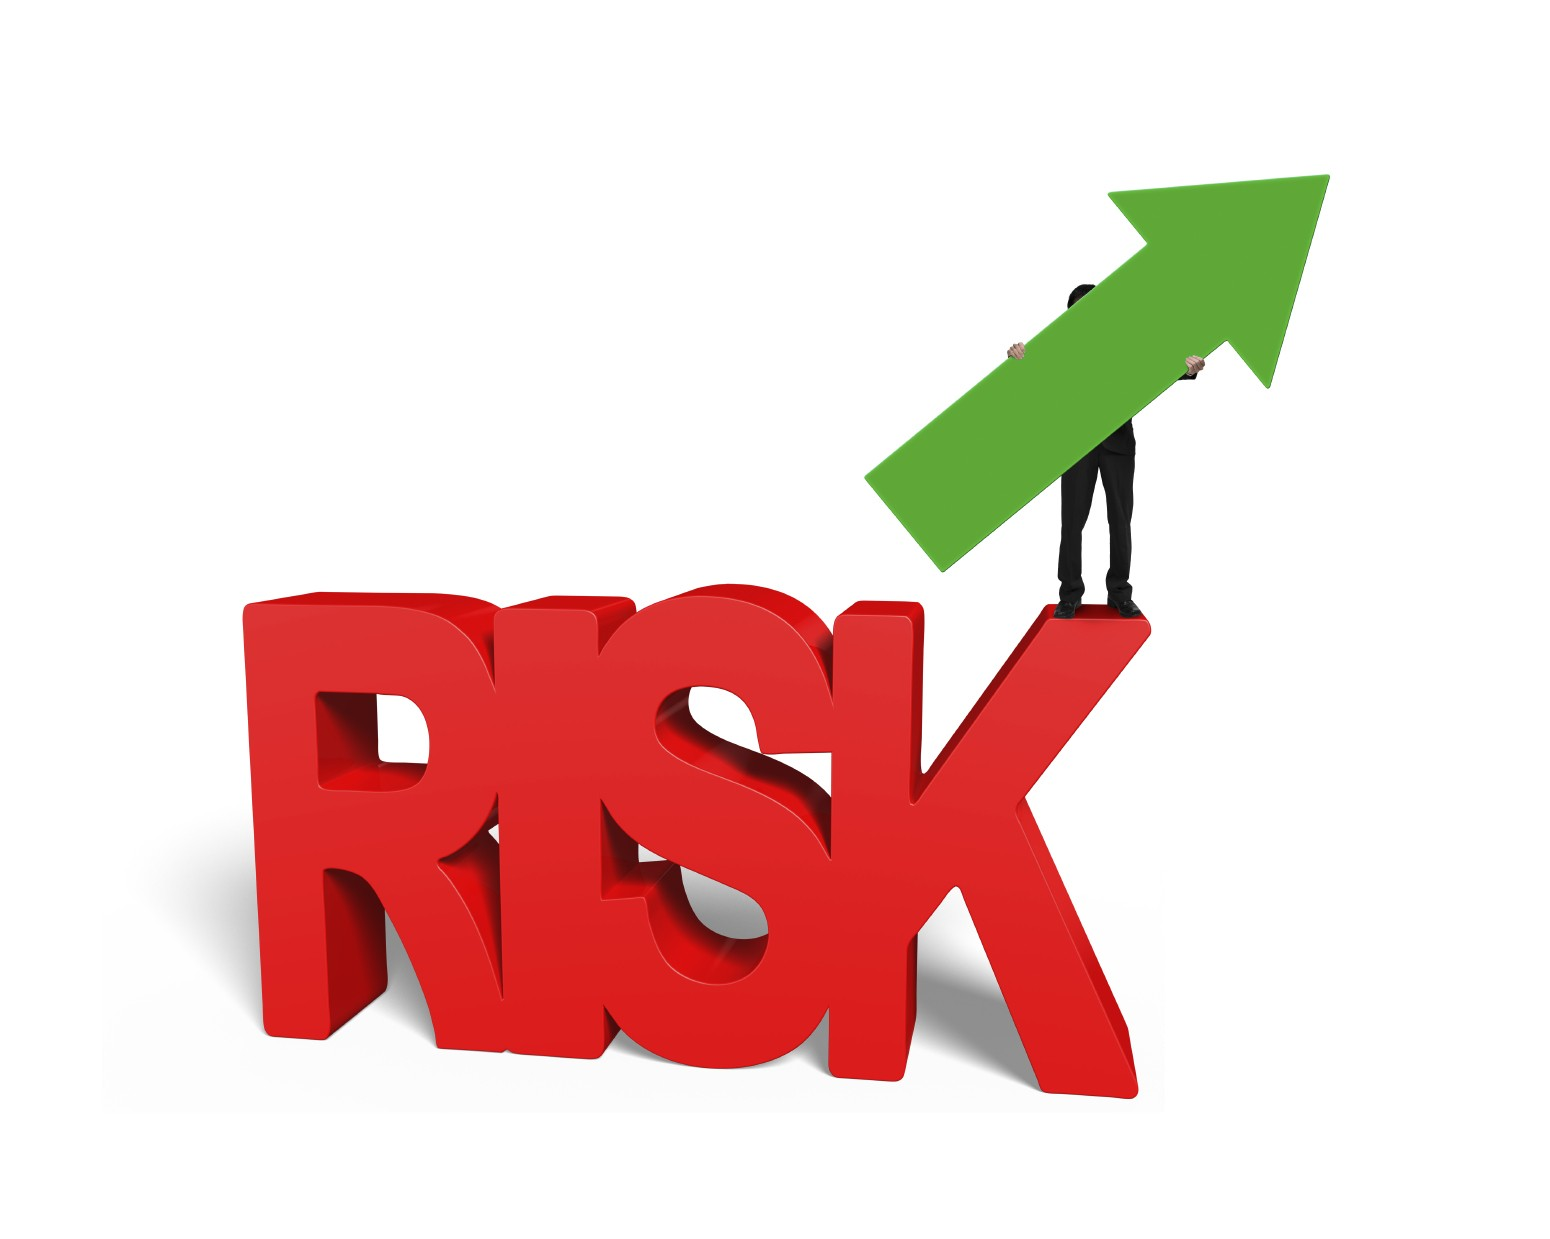 Man holding arrow up on red 3D risk word